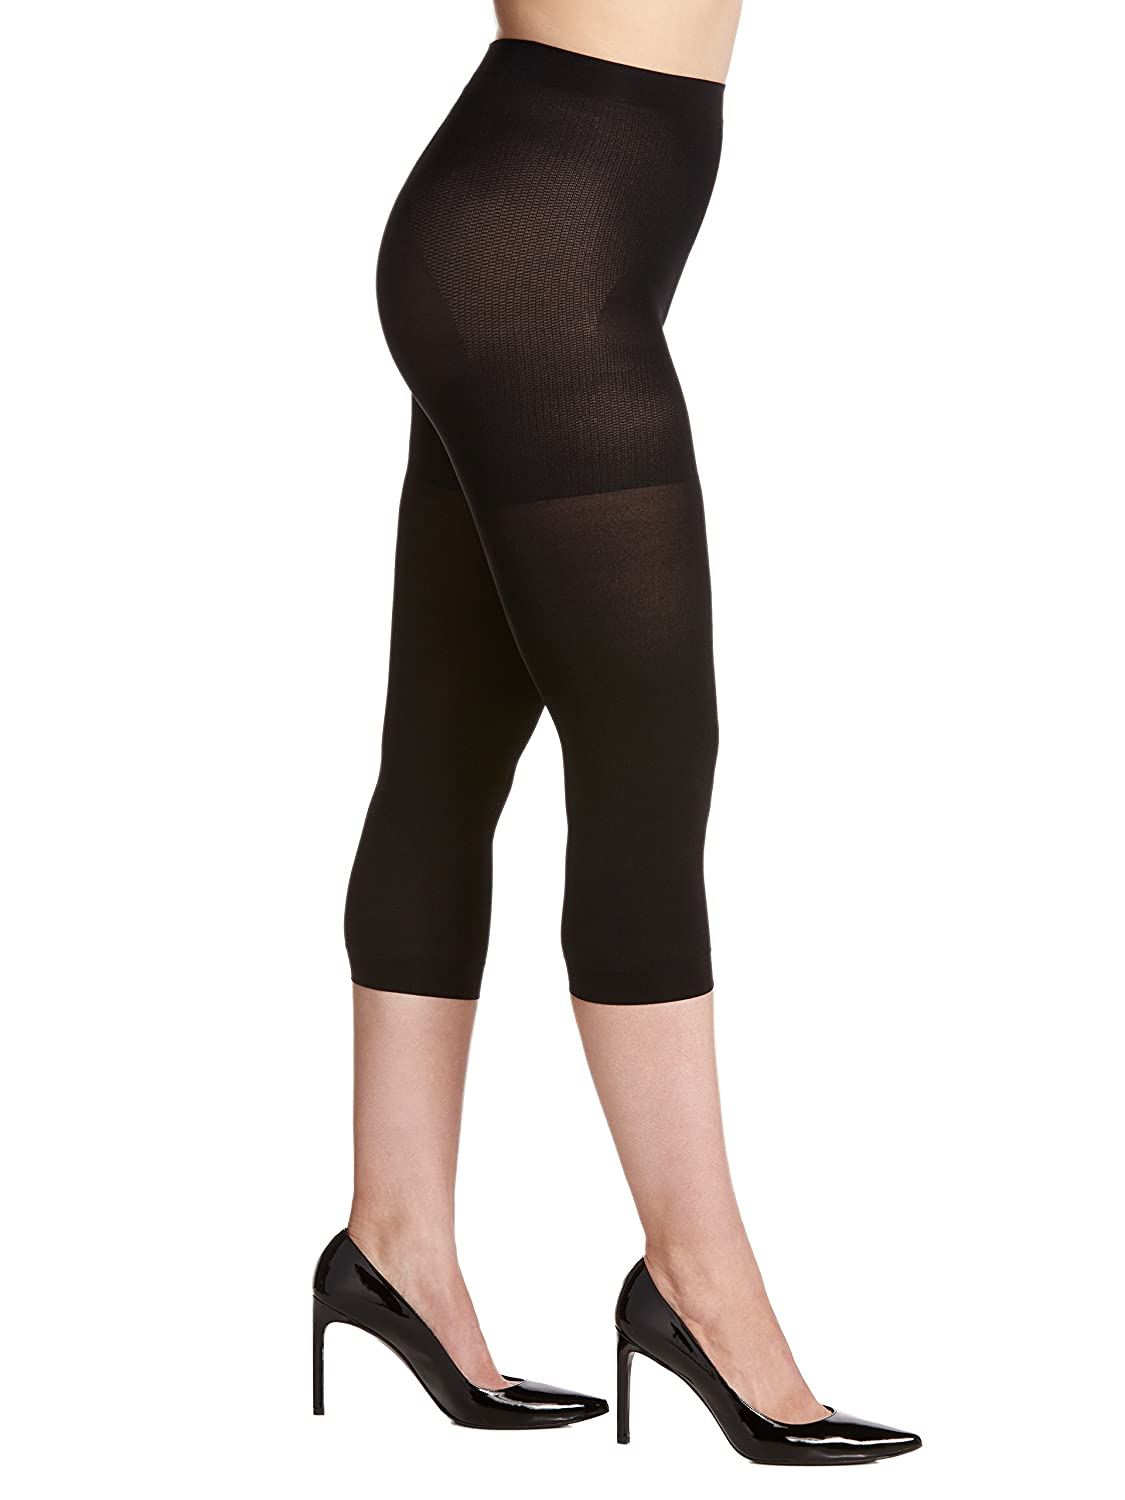 Berkshire Women's Easy On Max Coverage Capri Length Plus Size Tights Berkshire Women's Hosiery 5045